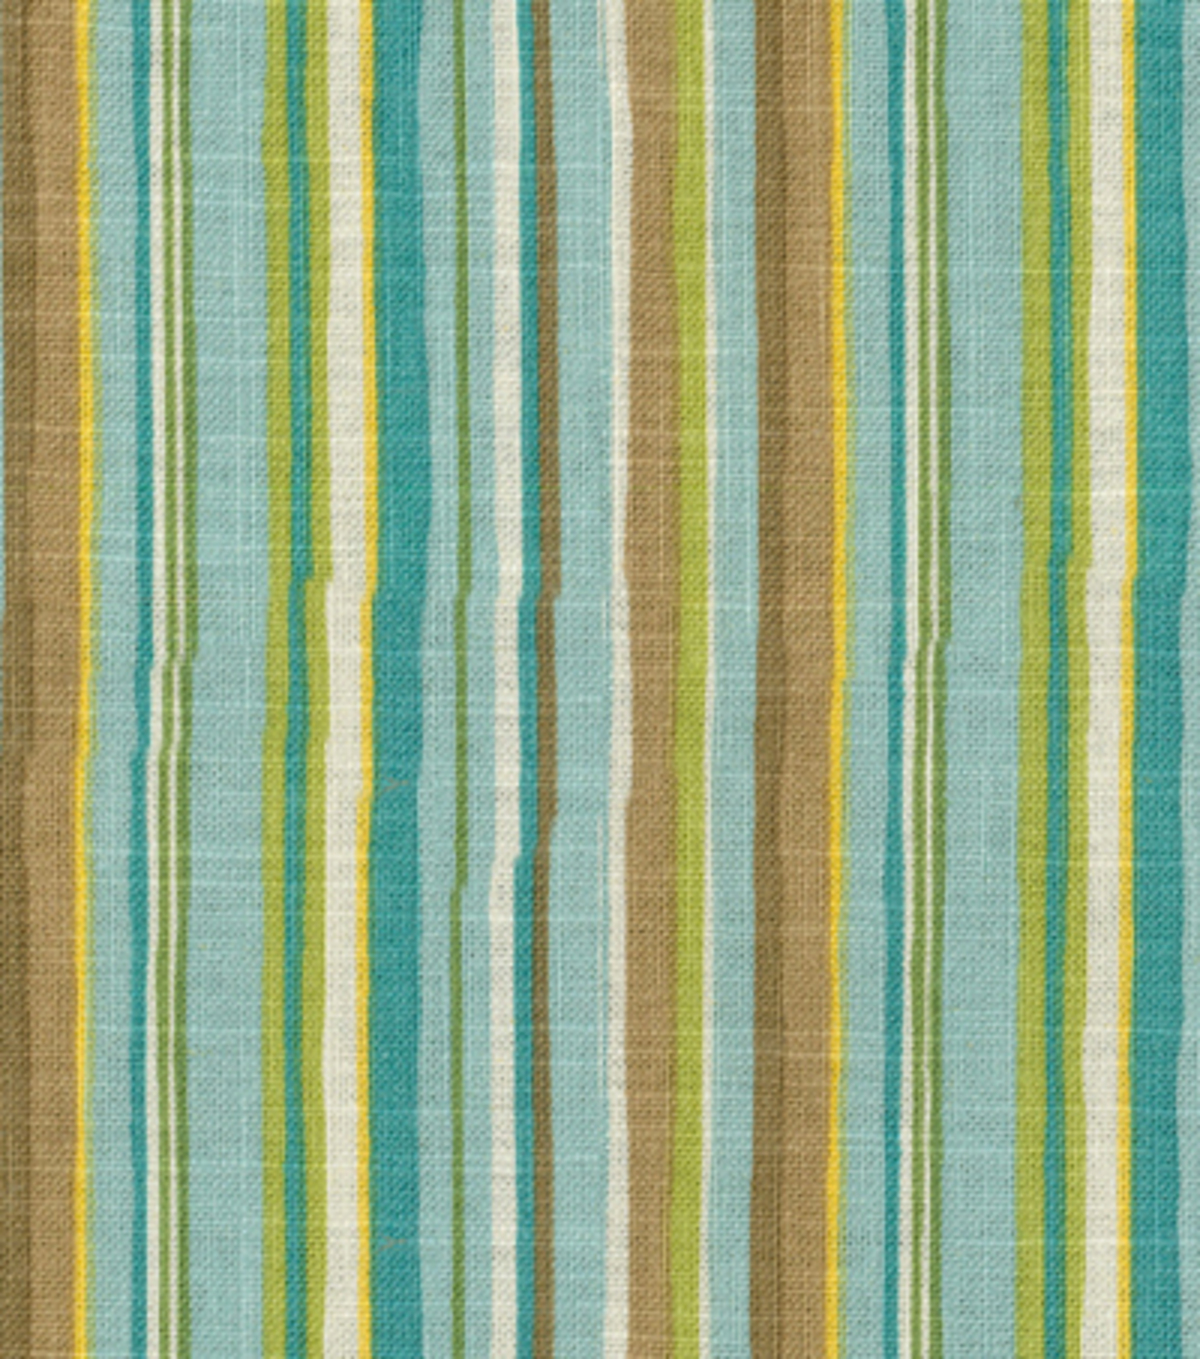 Home Decor 8\u0022x8\u0022 Fabric Swatch-Dena Cala Green Tea